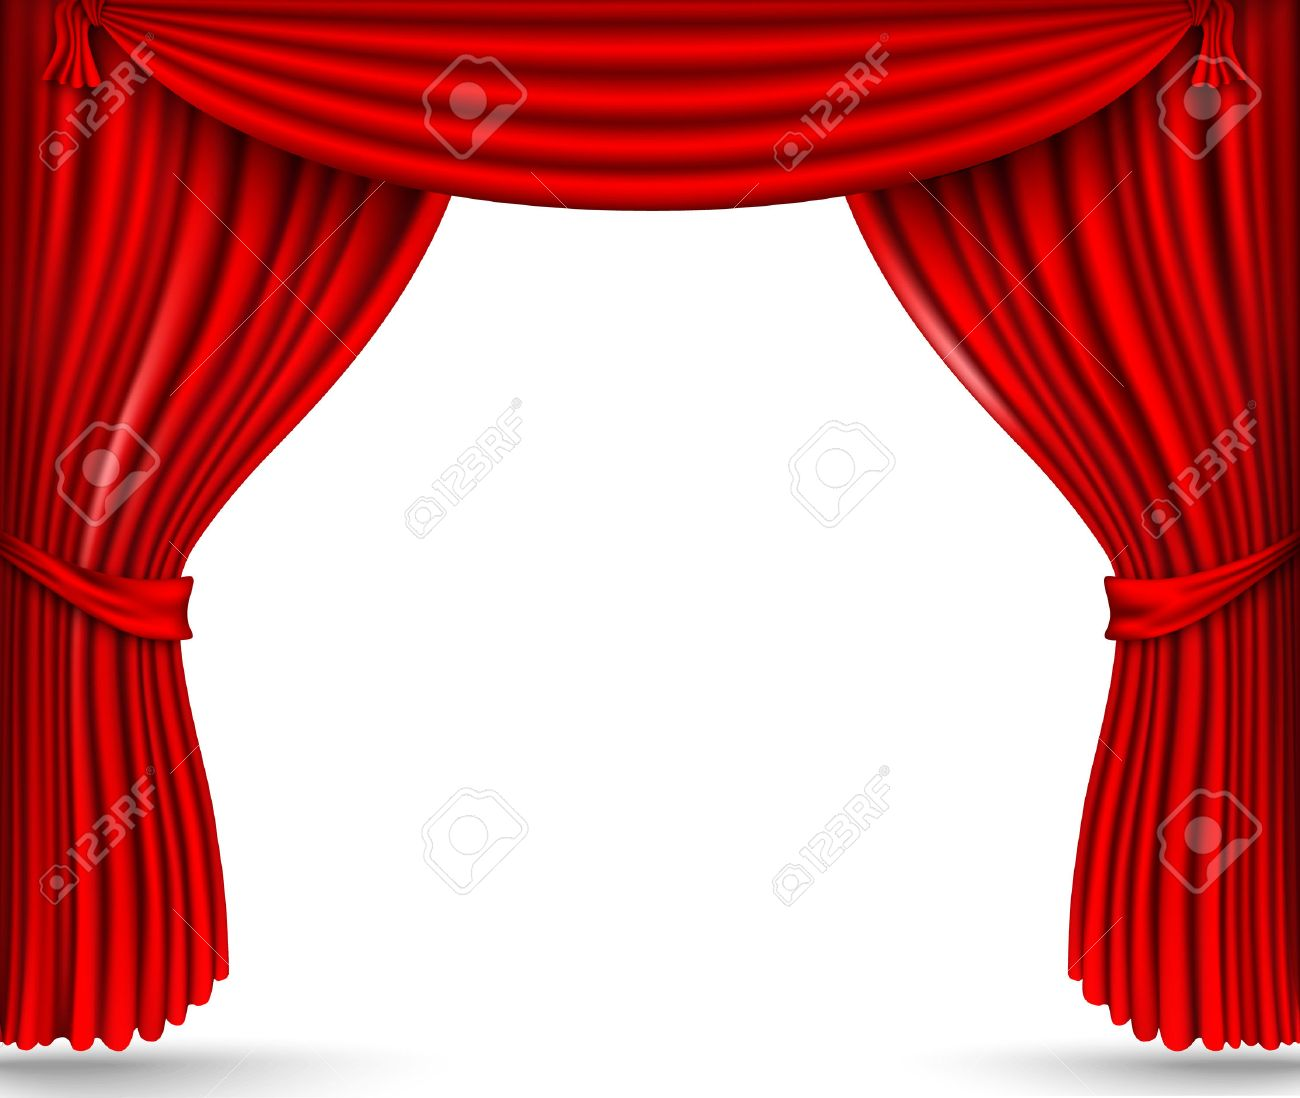 red silk curtains stage - 30111109